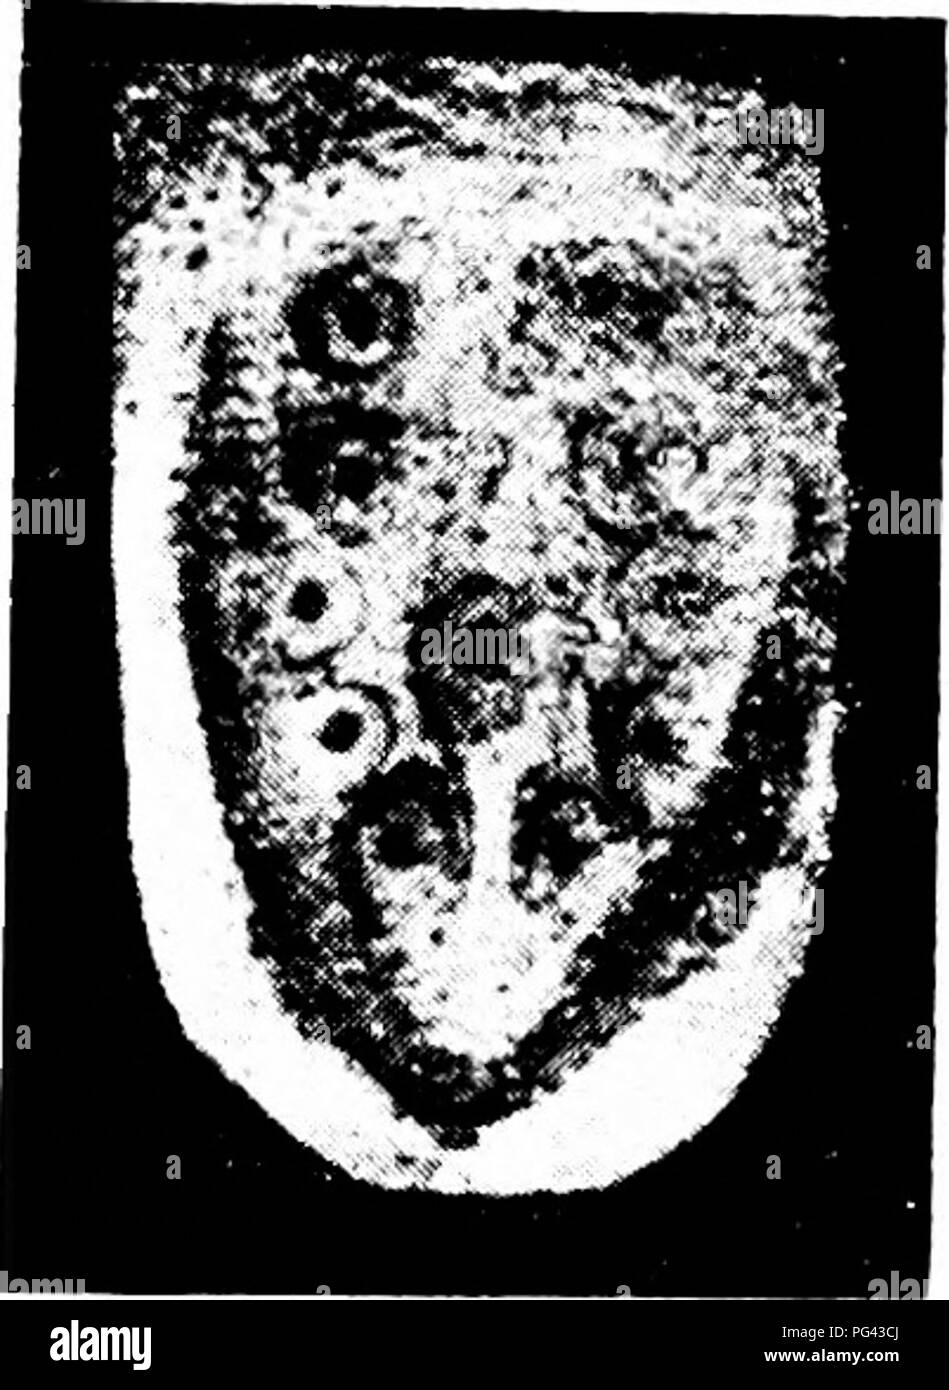 . The mammary apparatus of the mammalia : in the light of ontogenesis and phylogenesis . Mammals; Mammary glands. DEVELOPMENT IN DIDELPHY8 73 caudal pairs of nipple primordia are clearly seen. Round the central primordium and the fourth pair, however, they are only beginning to develop. These primordia obviously belong to the inner series of the four-rowed arrangement that we have already recognized. I would. Fig. 27.—Abdominal Wall of Young Didelphys, (Bresslau.) Micro-photograph, 12 diameters. especially emphasize that these ring-shaped ingrowths are to be regarded as individual formations,  - Stock Image